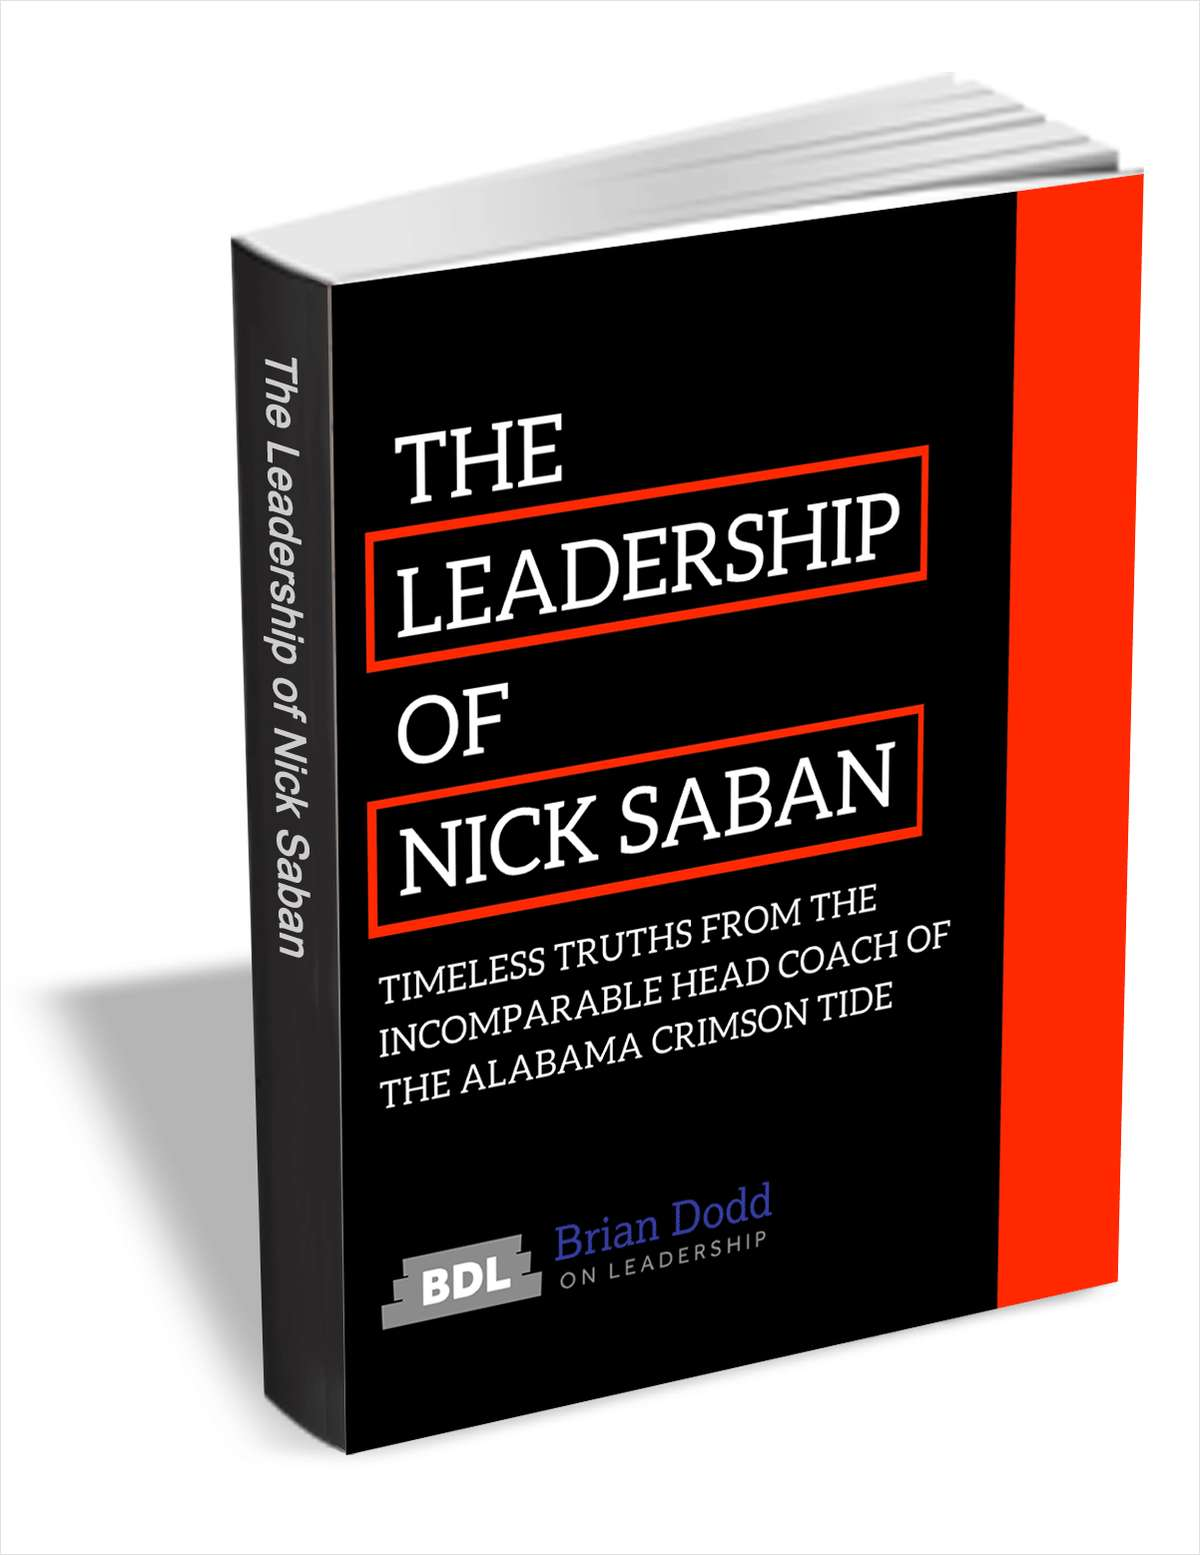 The Leadership of Nick Saban - Timeless Truths from the Incomparable Head Coach of the Alabama Crimson Tide